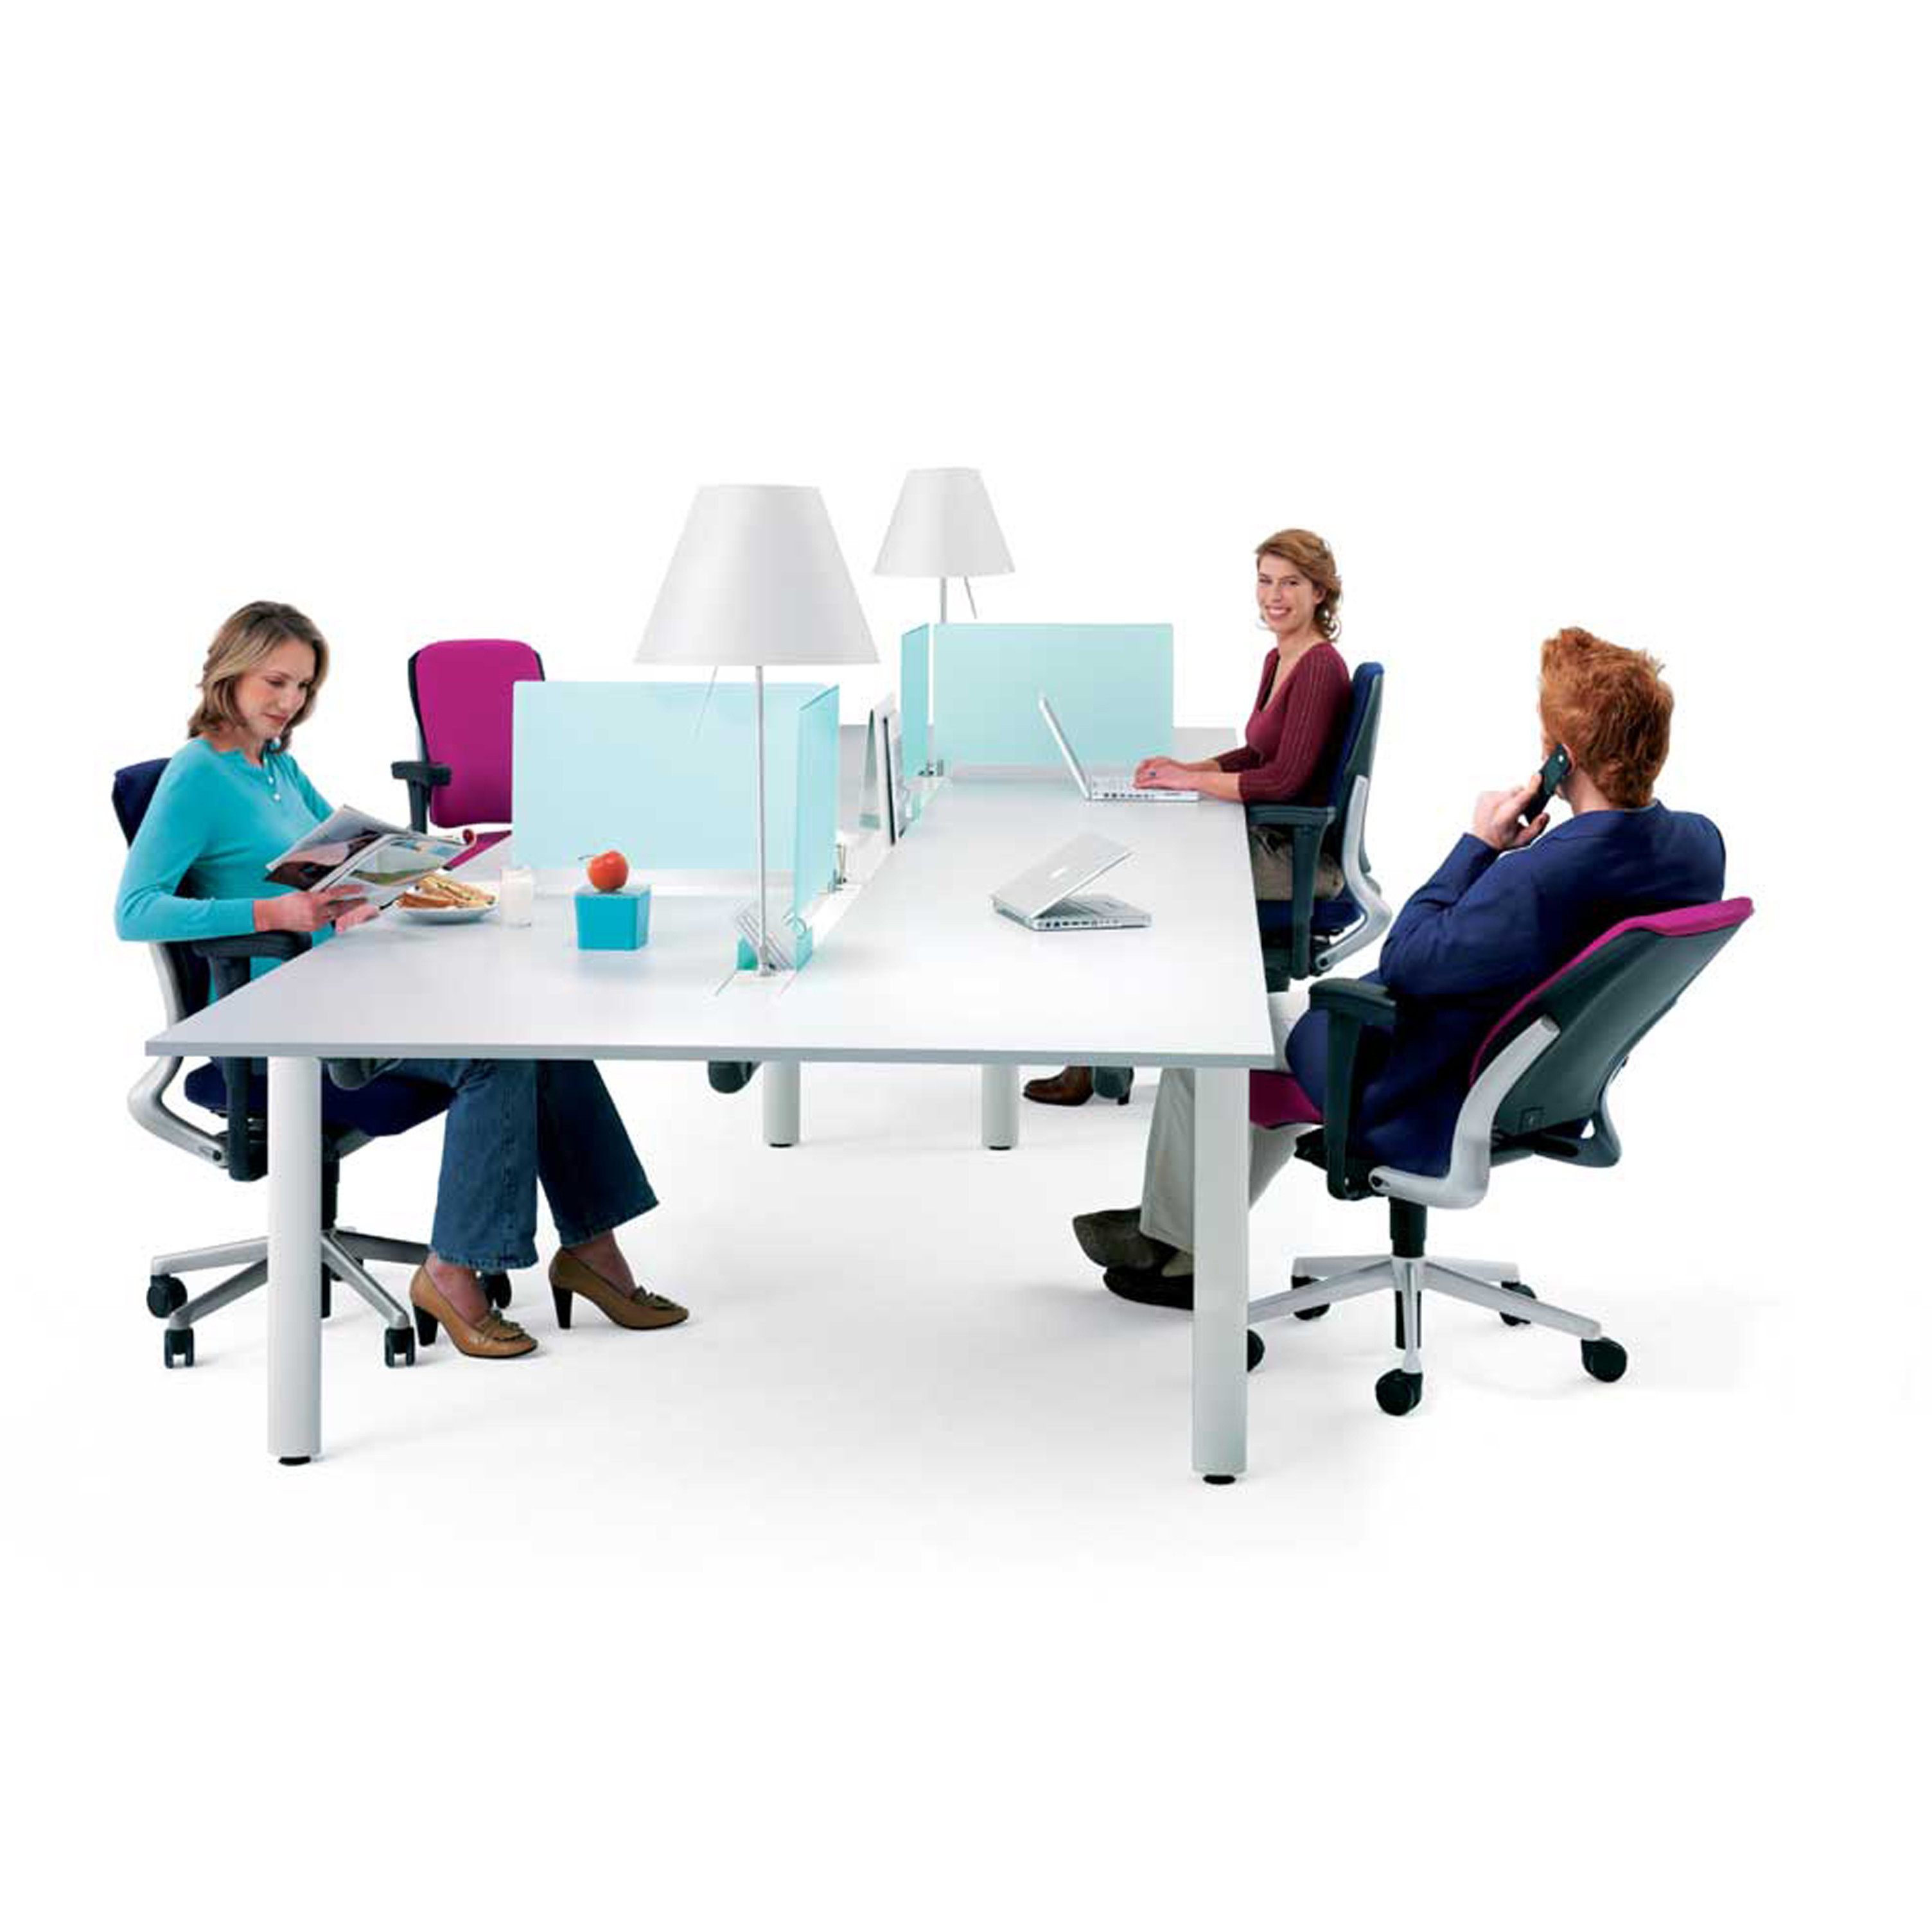 Ahrend 230 Desk Chairs